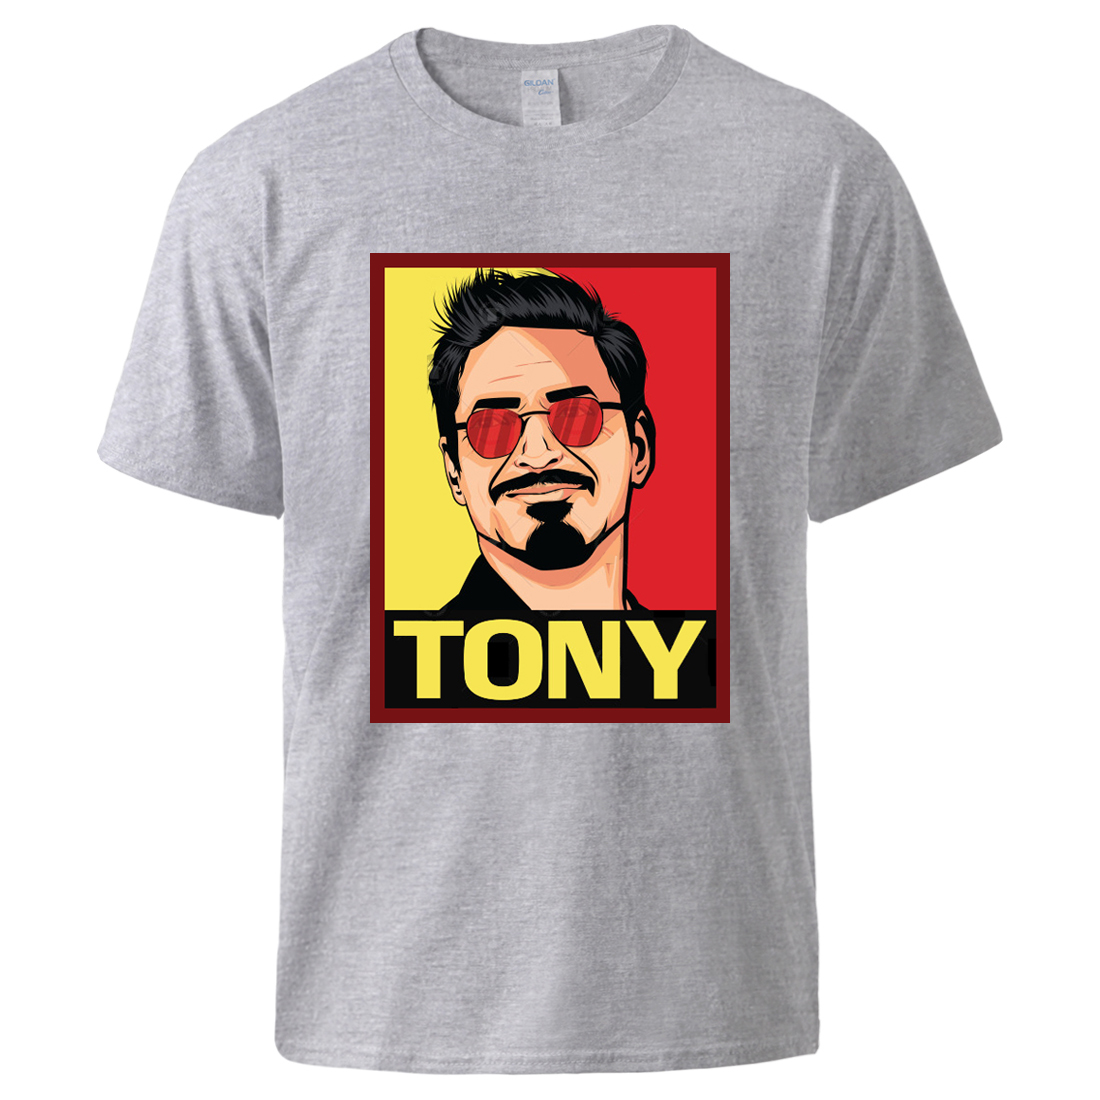 Marvel Superhero Tony Print Tshirts Top Man Summer Short Sleeve Cotton Sweatshirts 2020 Male Hot Sell Pullover T Shirts Plus